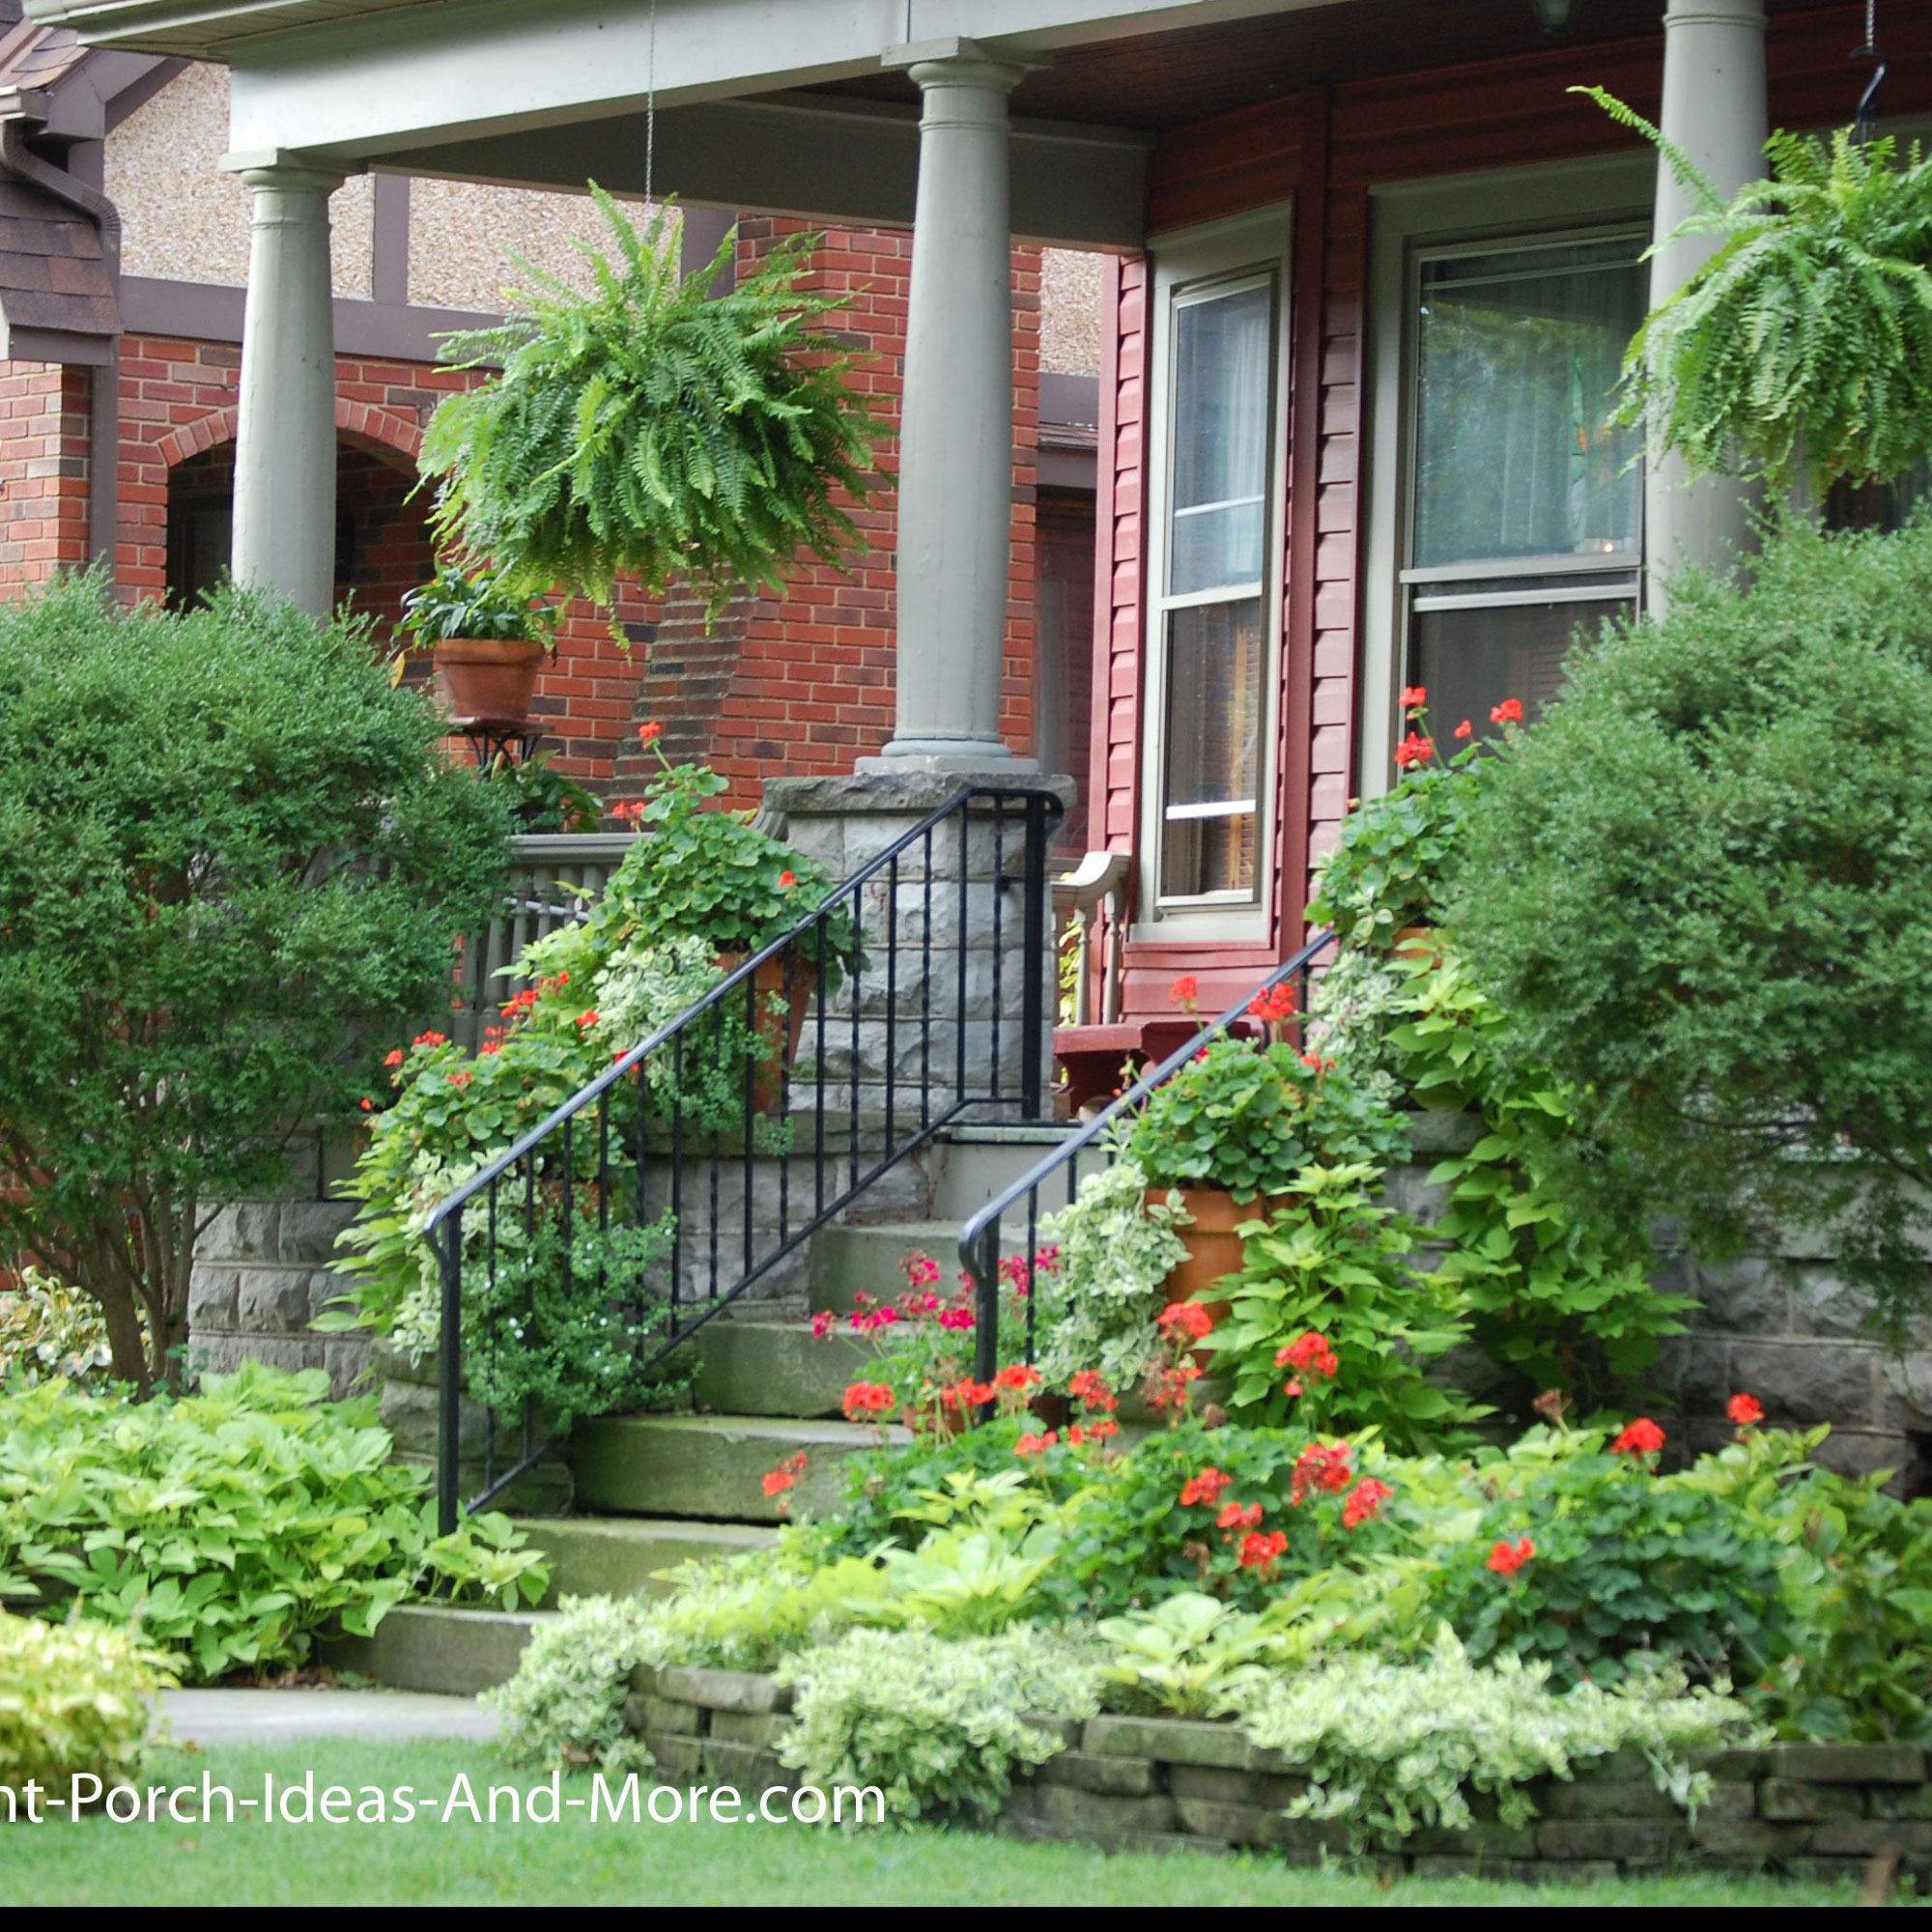 Porch landscaping ideas for your front yard and more for Landscaping options